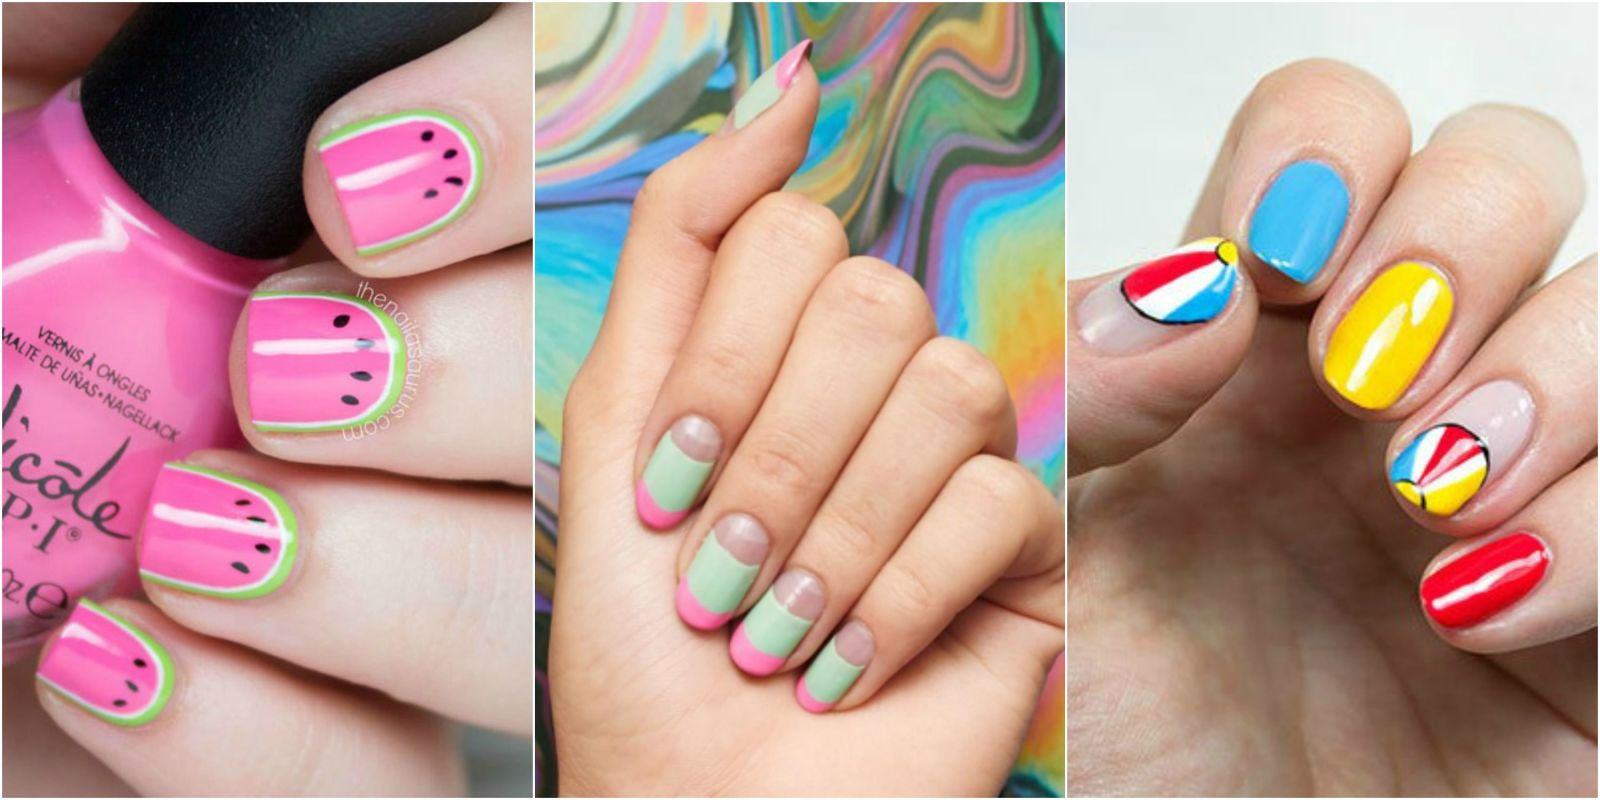 30 summer nail designs for 2017 best nail polish art ideas for summer - Toe Nail Designs Ideas